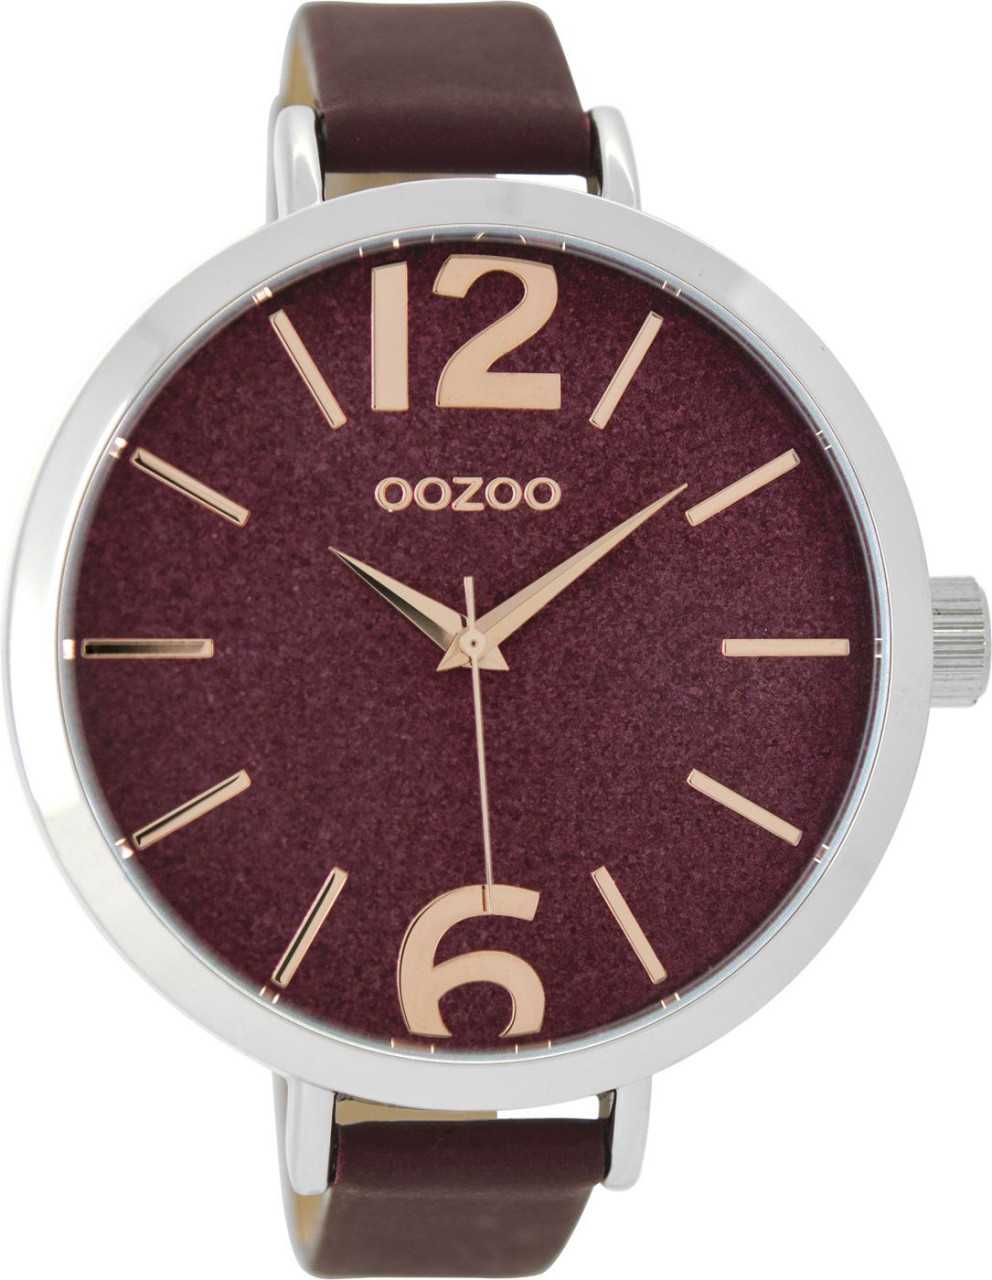 Oozoo XXL Damenuhr C9193 - silberfarben-bordeaux - Lederband - 48 mm